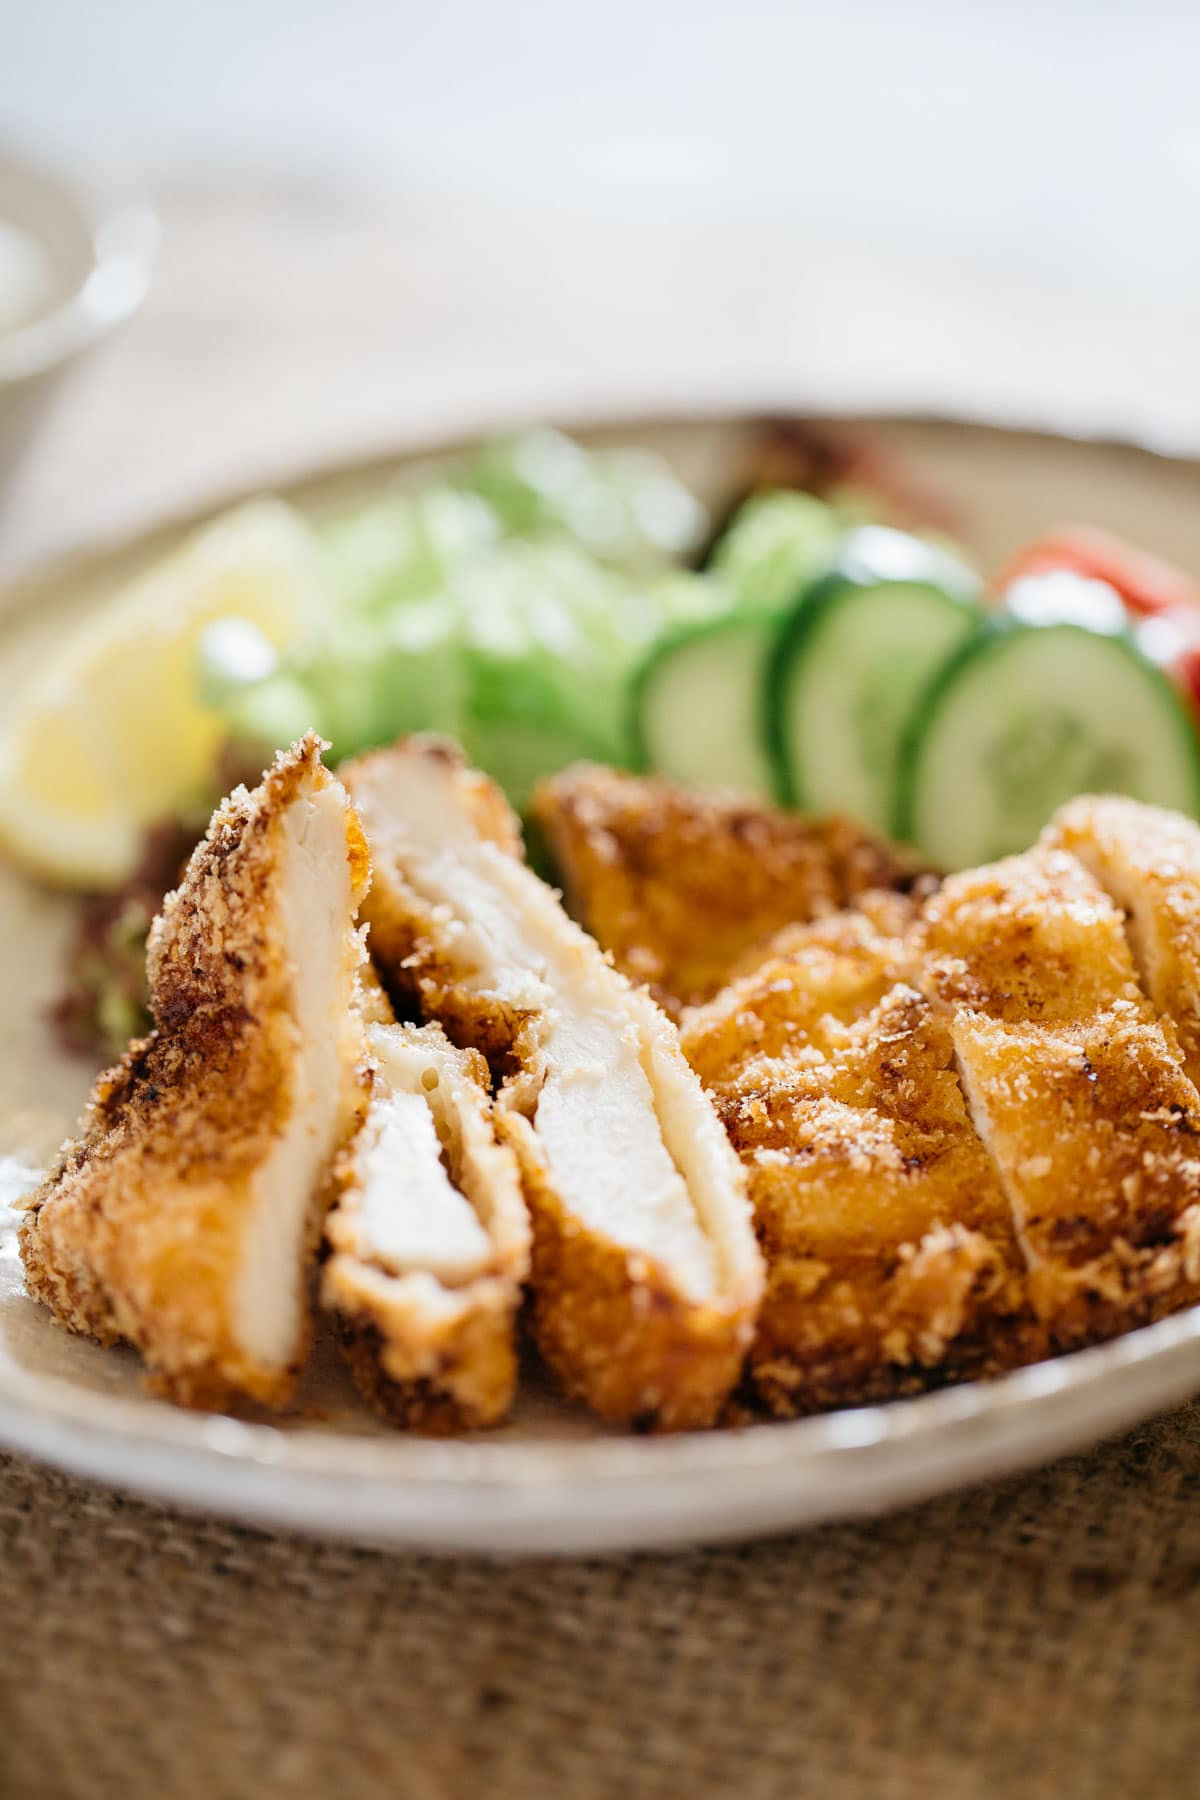 deep fried chicken katsu sliced and served on a plate with green salad